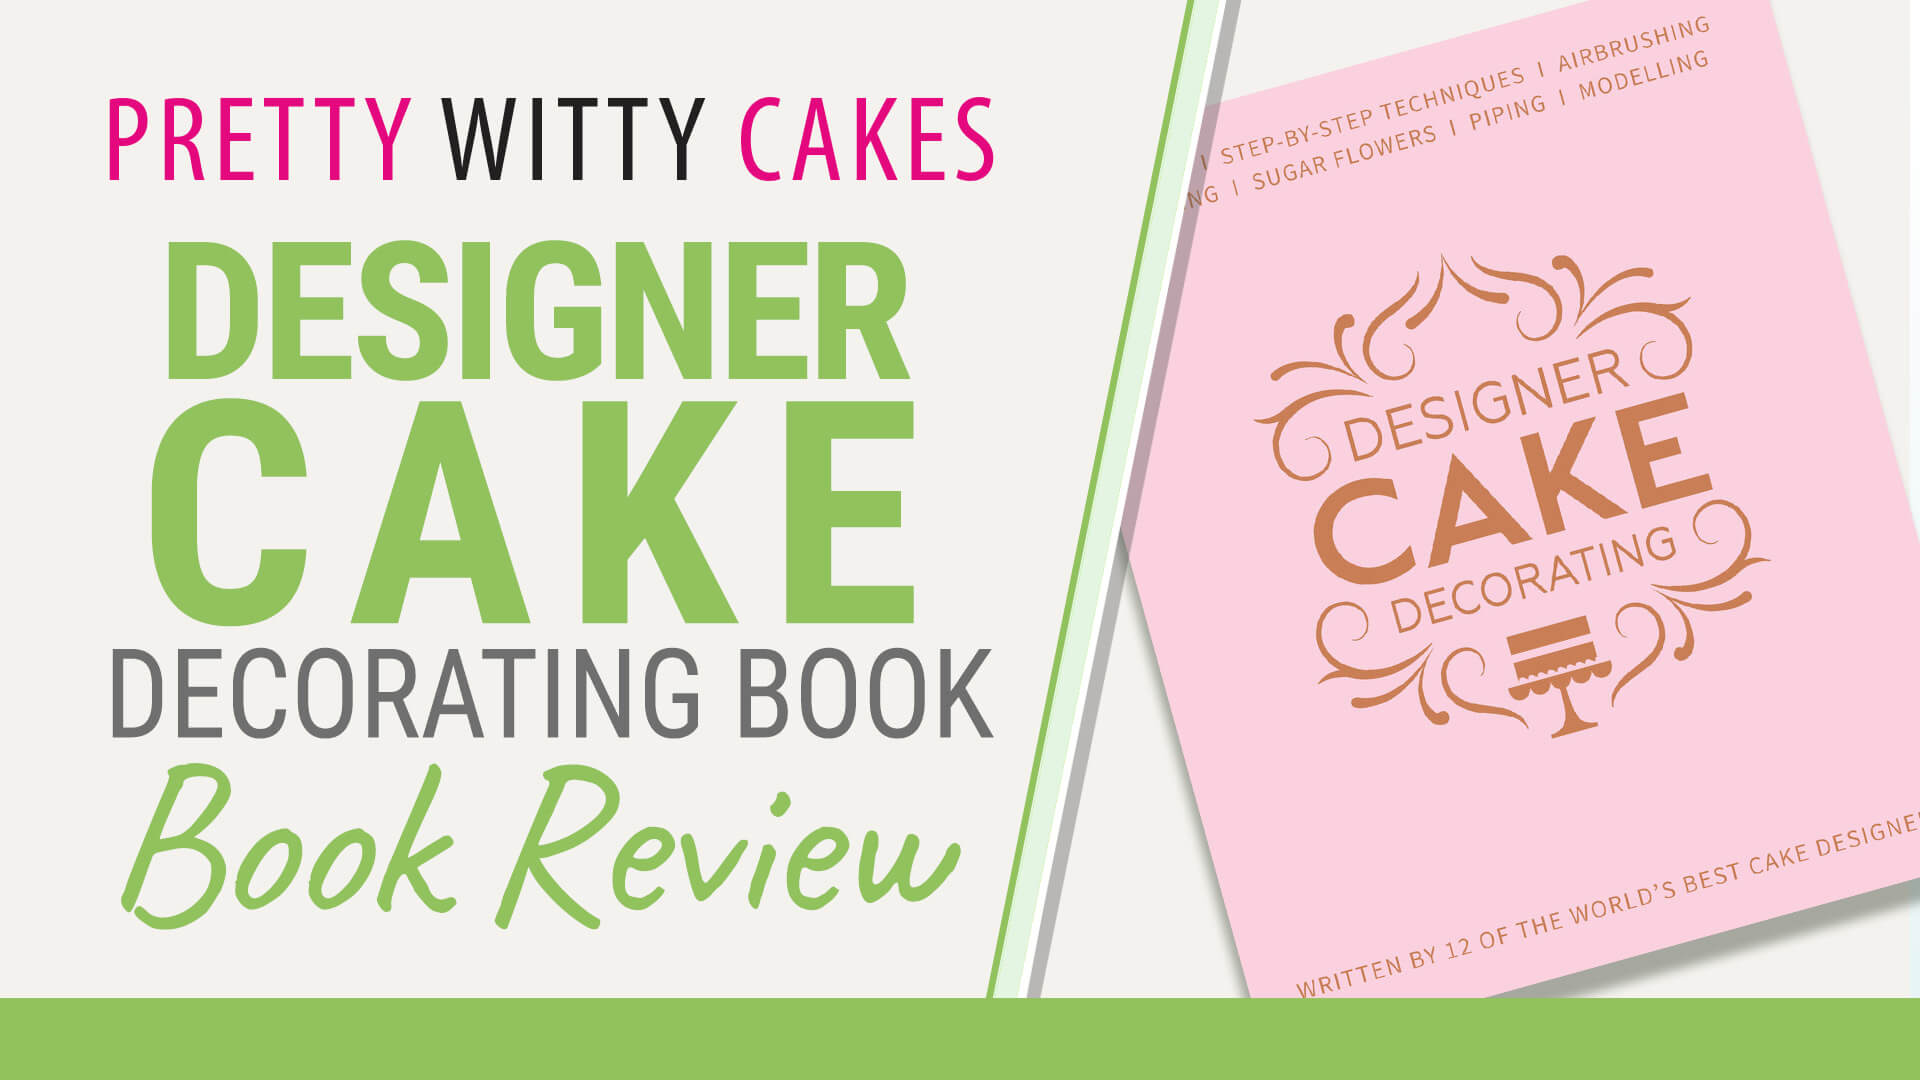 New Designing Cake Decorating Book - Pretty Witty Cakes